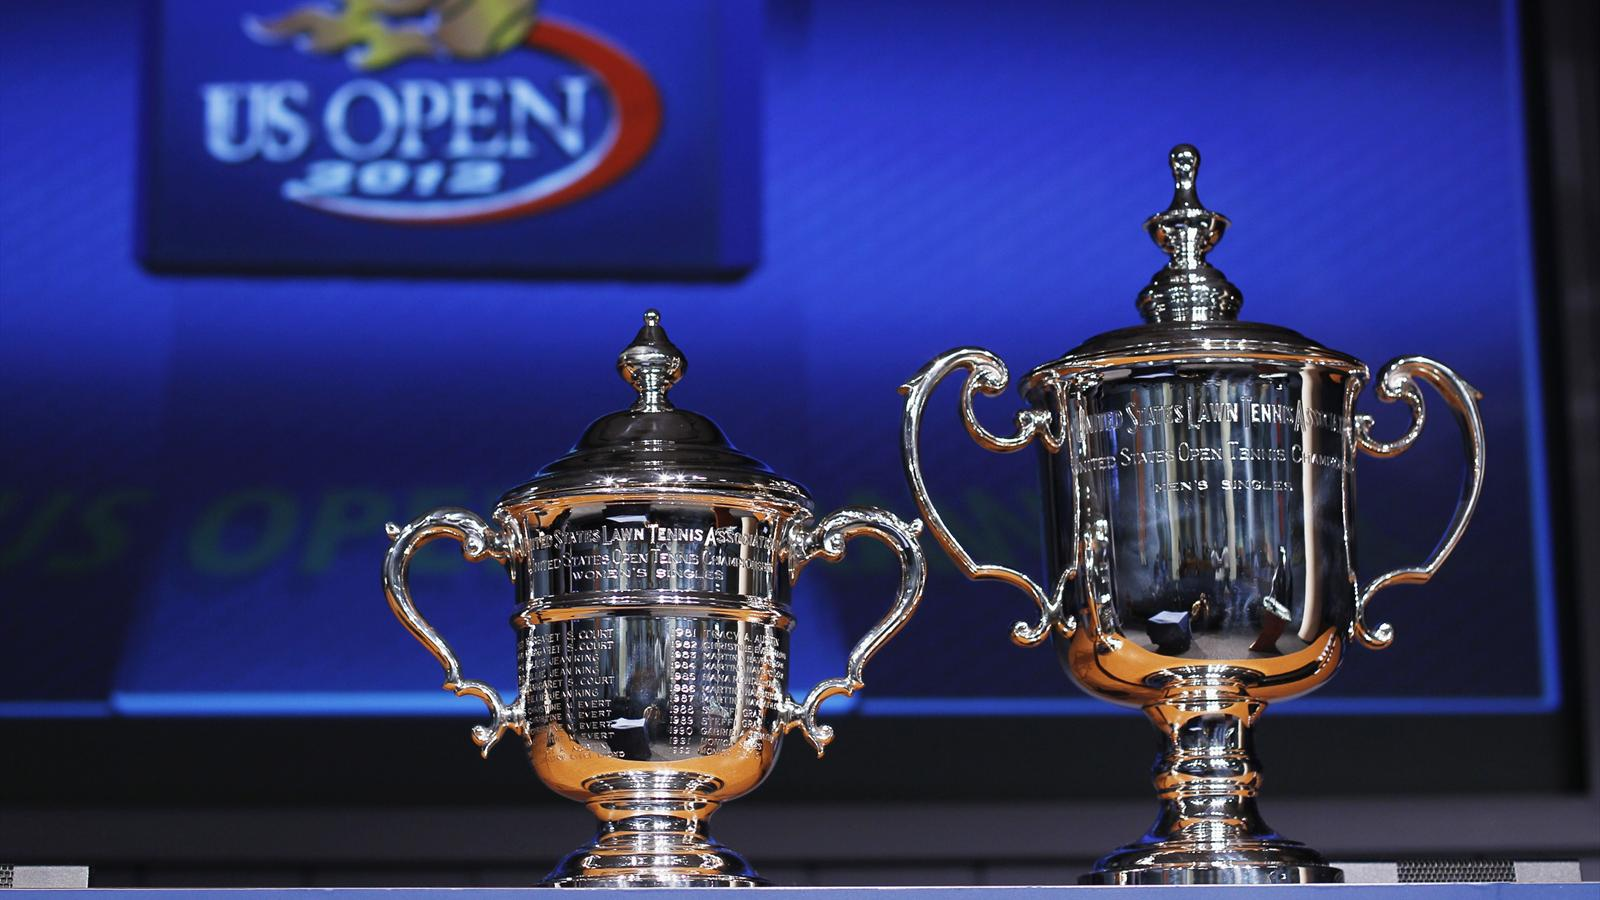 a history of the us open tennis championship The us open bears little resemblance to the tournament started in 1881 it has evolved from an exclusive men's singles and doubles tournament in newport, ri, to a two-week sports and.